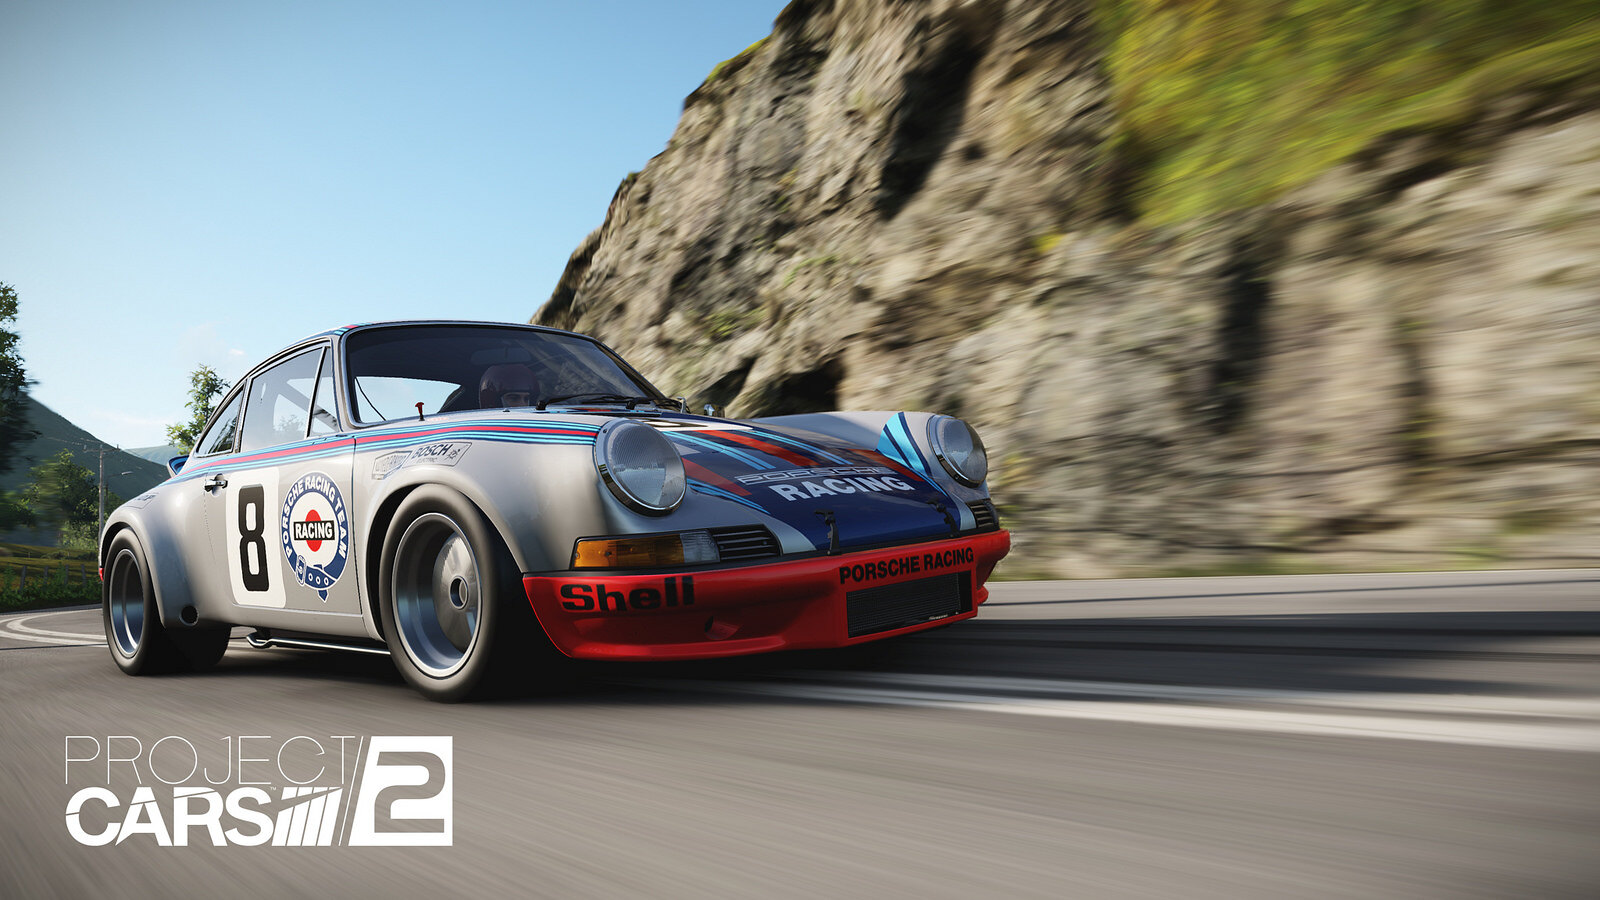 Project-CARS-2-Porsche-911-RSR-2.8-preview